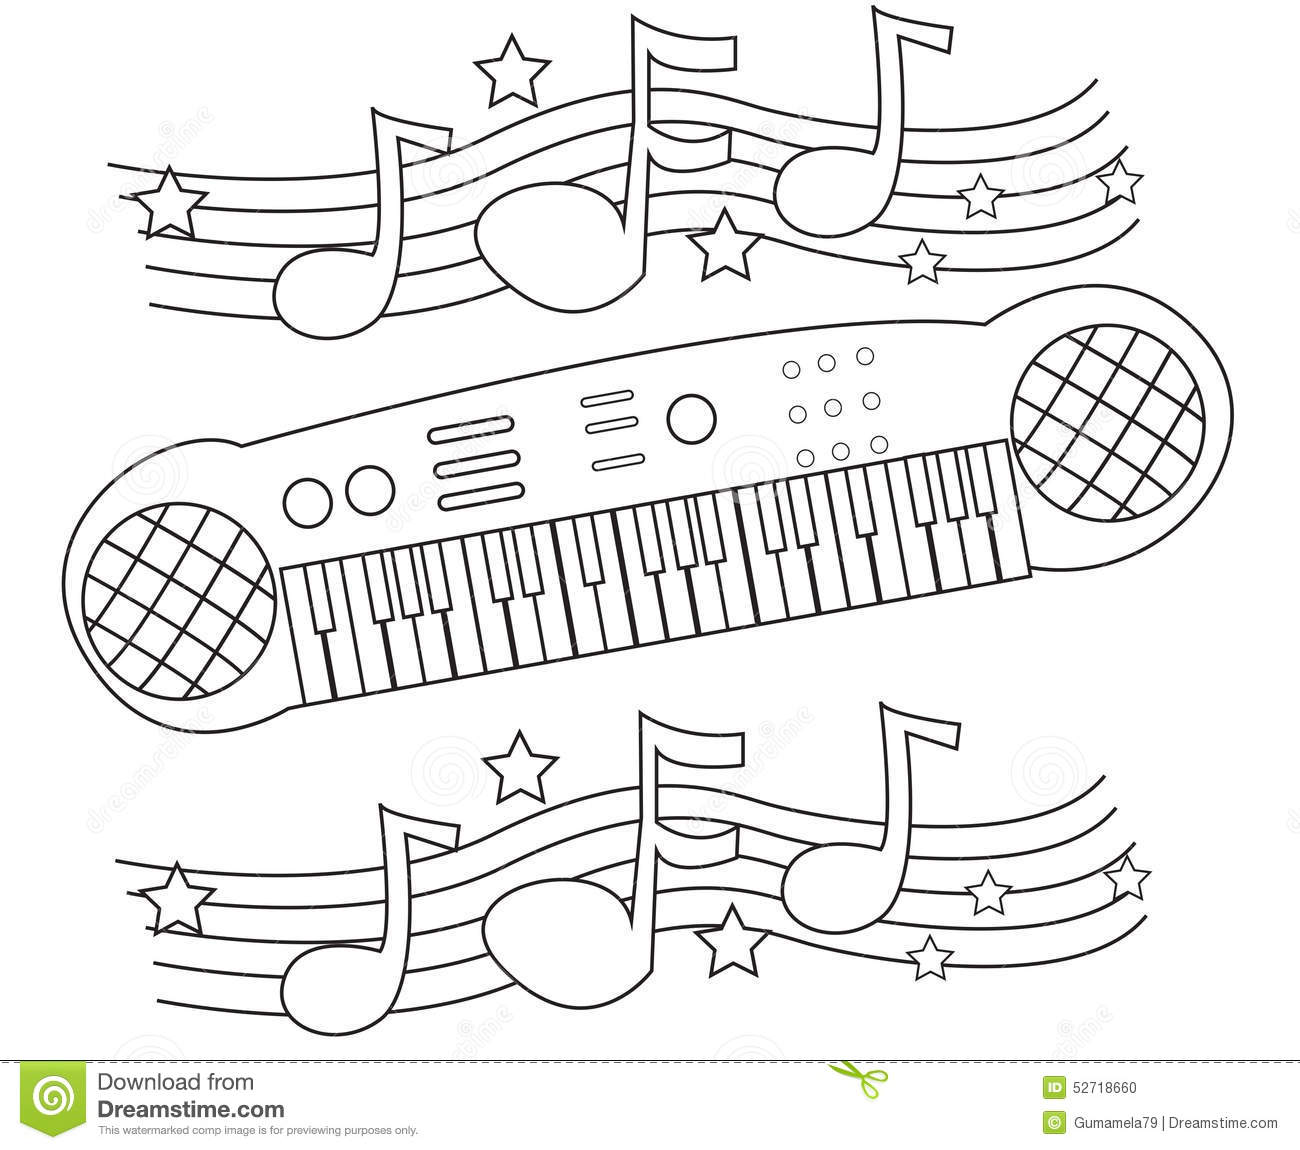 Coloring 3d Keyboard Coloring Pages